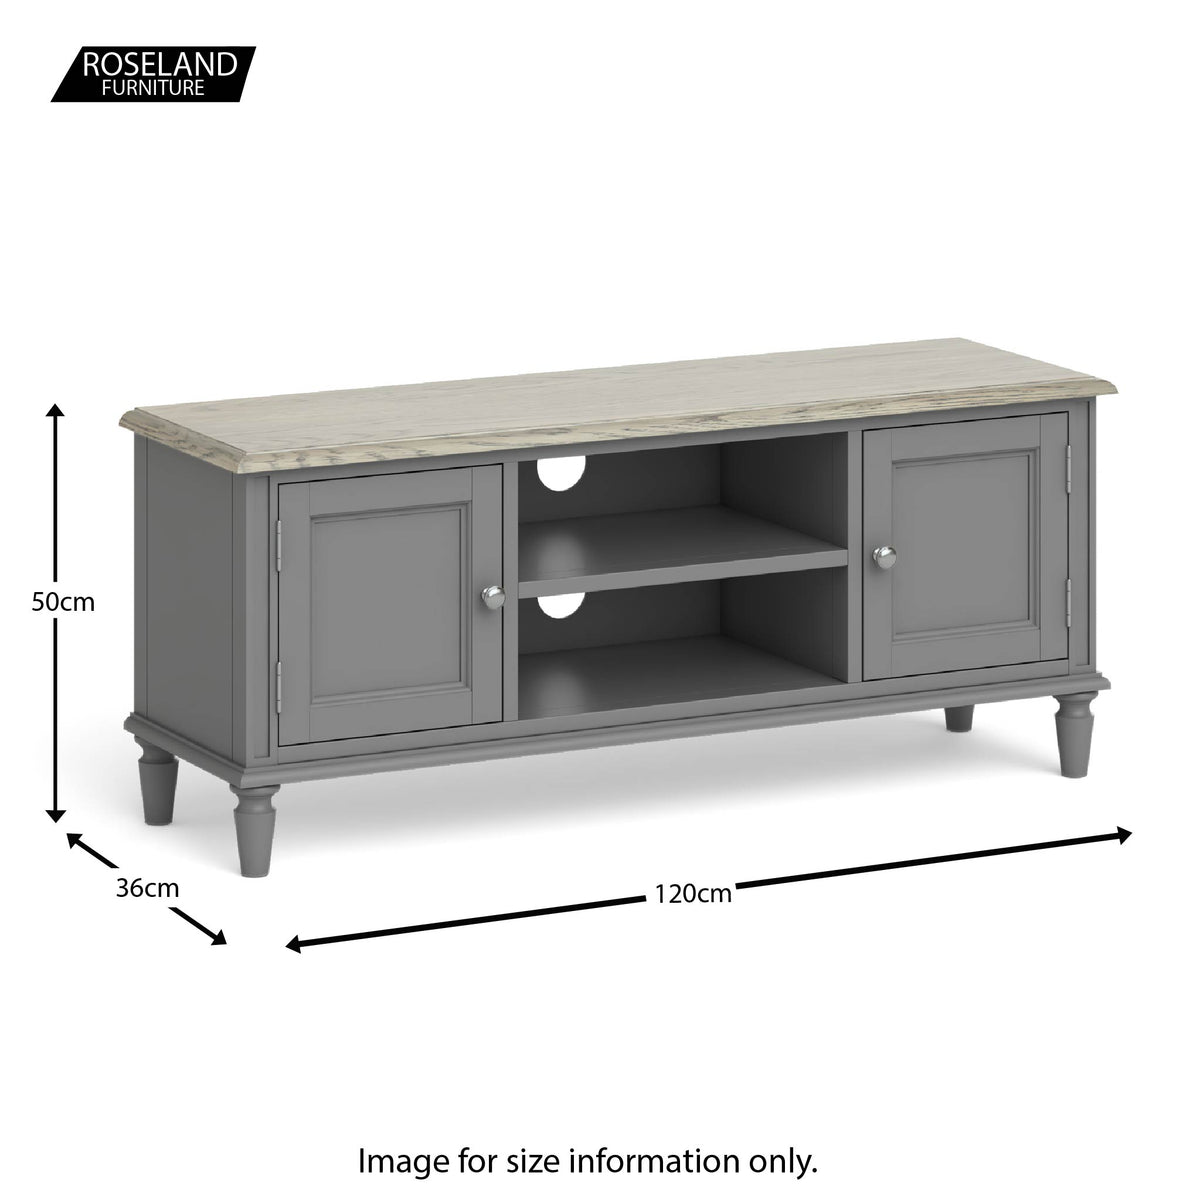 The Mulsanne Grey French Style Wooden Television Stand